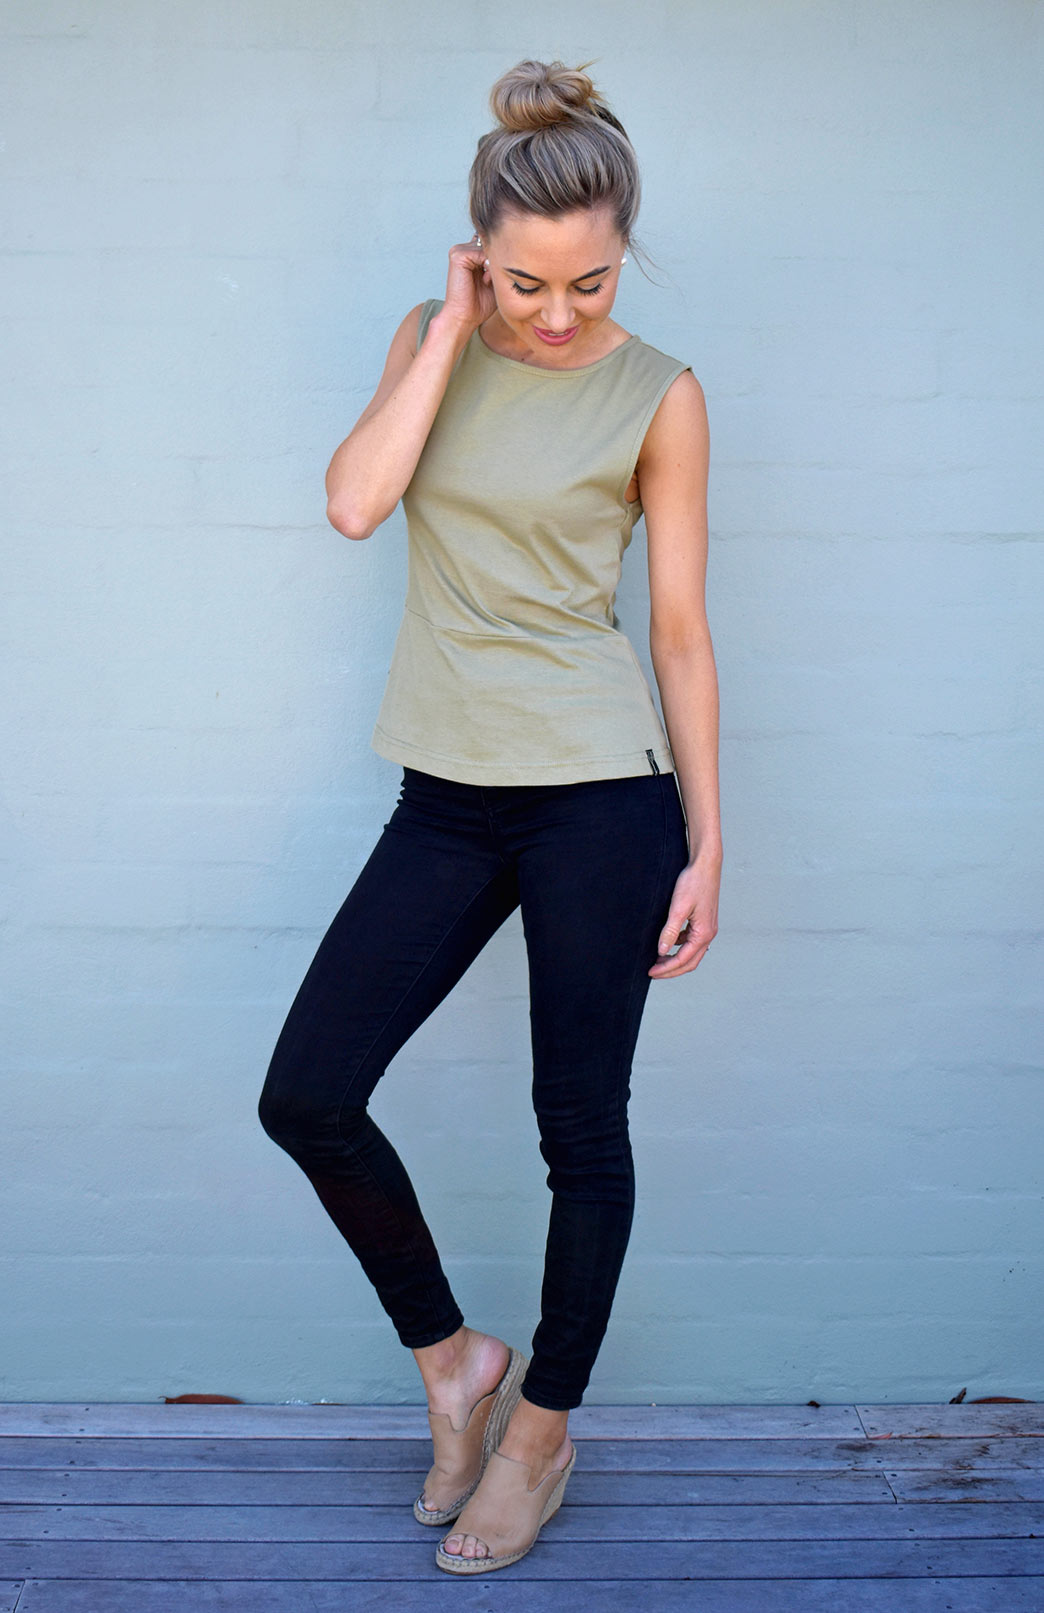 Pippa Top - Women's Organic Cotton Khaki Green Sleeveless Peplum Top with high neckline and wide straps - Smitten Merino Tasmania Australia